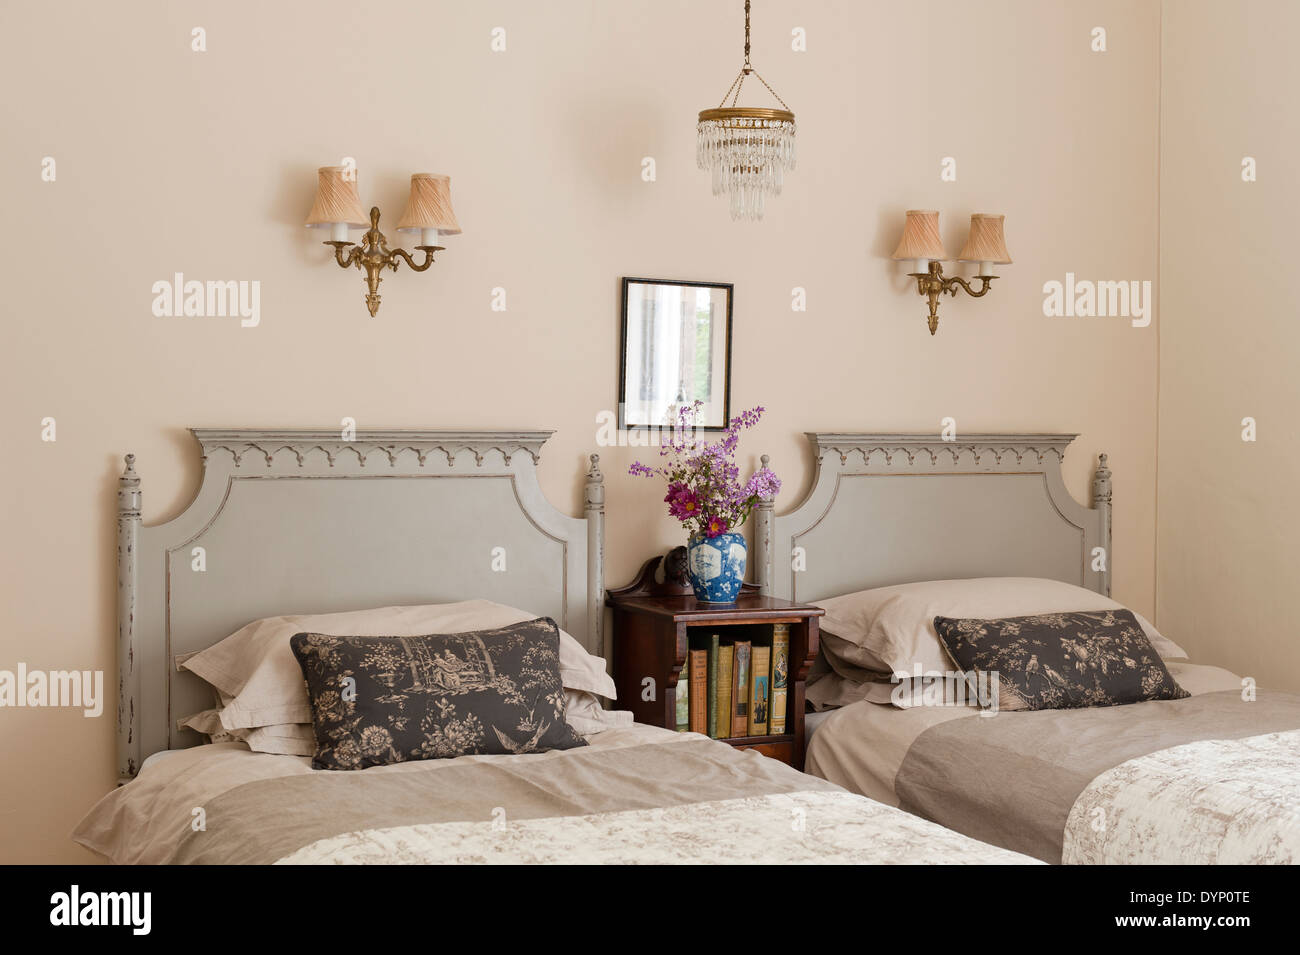 Picture of: Matching Twin Beds With Distressed Wooden Headboards Made Up With Stock Photo Alamy